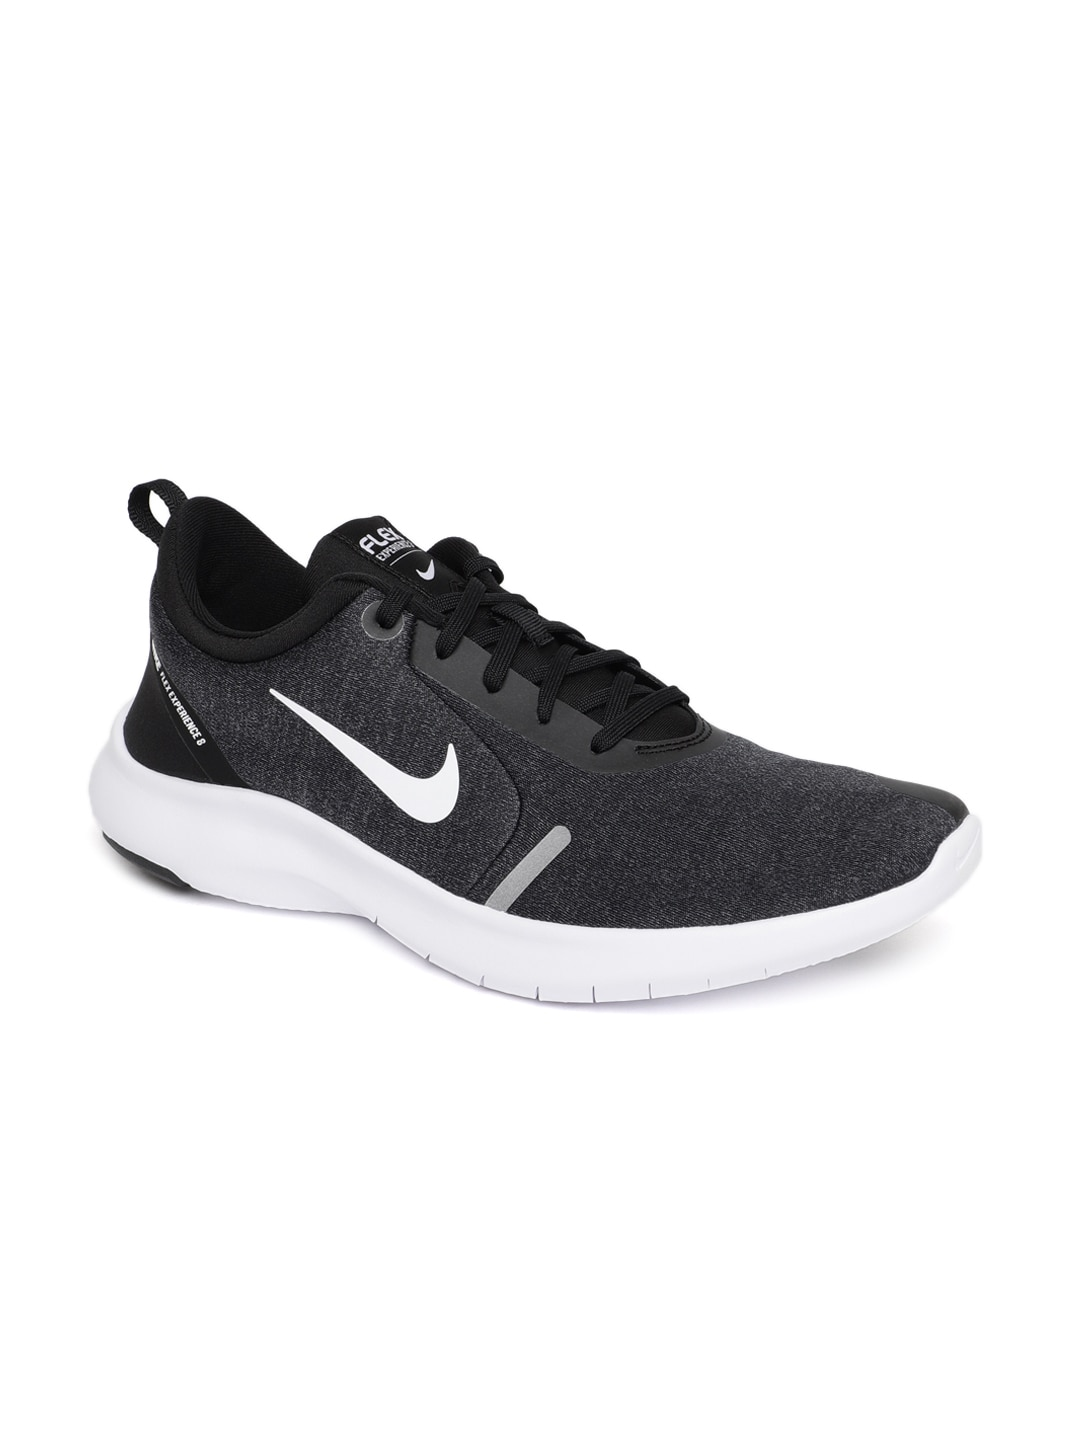 56b1438c11102 Nike Shoes - Buy Nike Shoes for Men